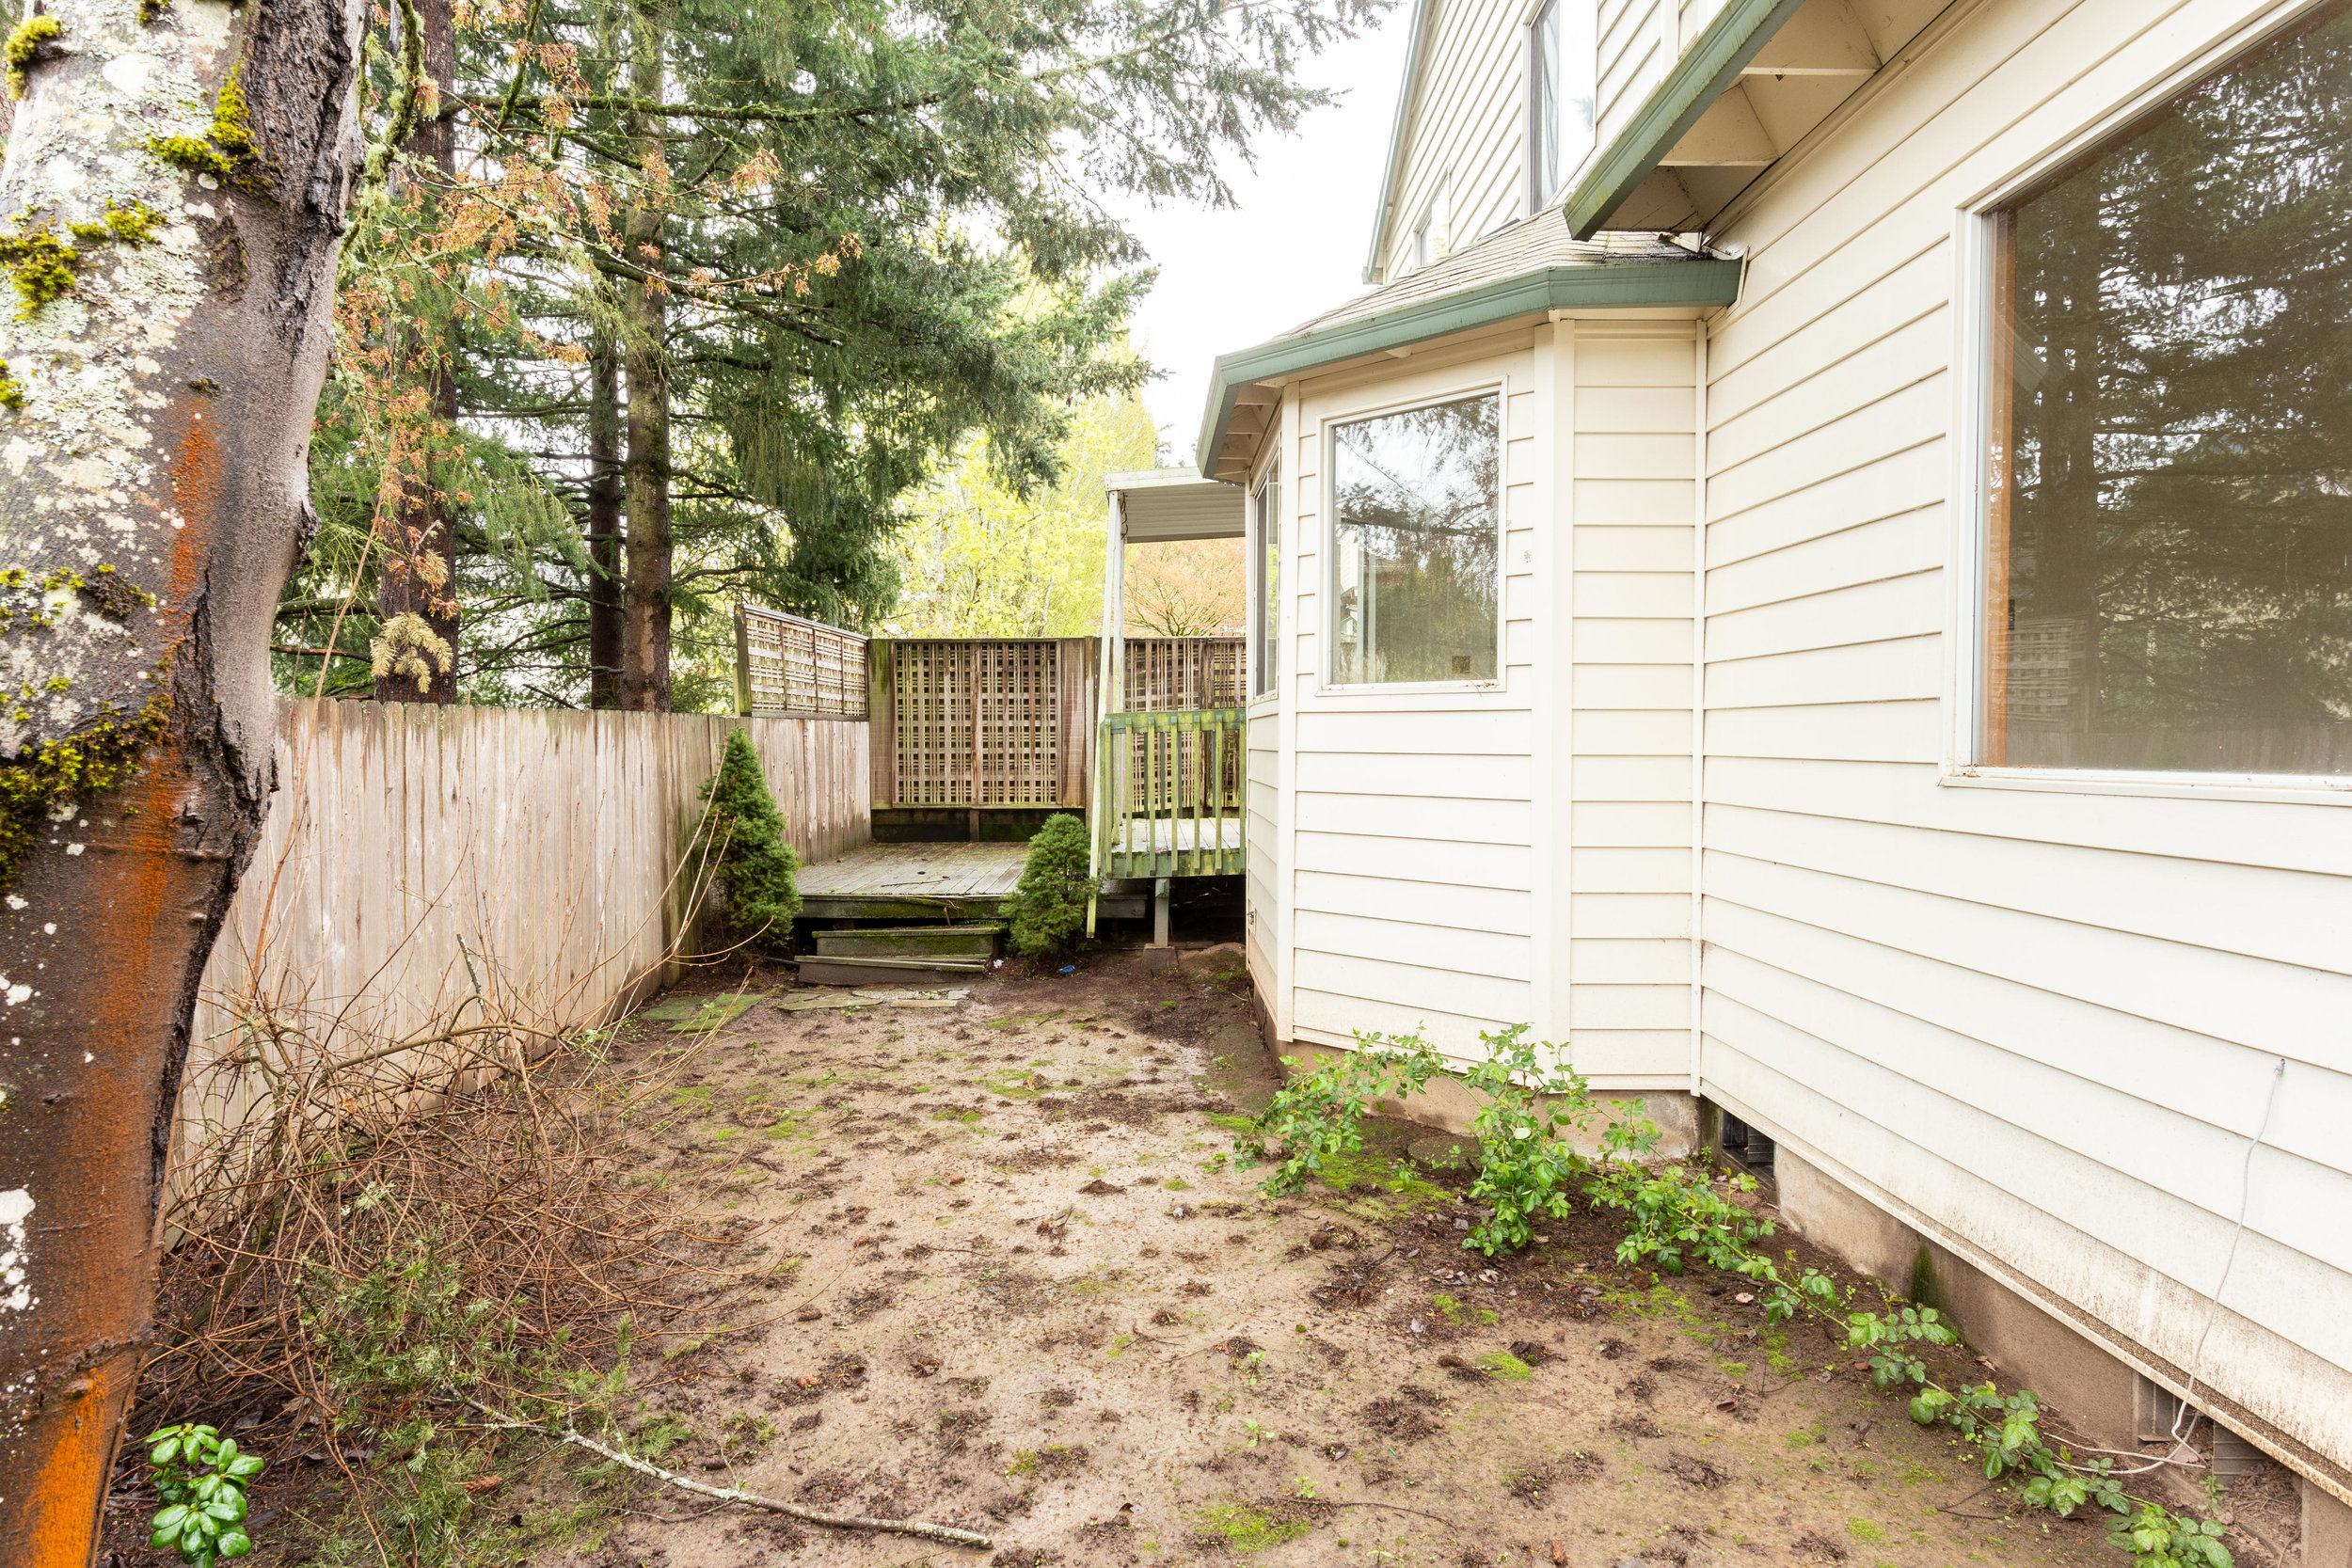 The side and backyard is just big enough to be useful but not too big to take care of. What will you put here?